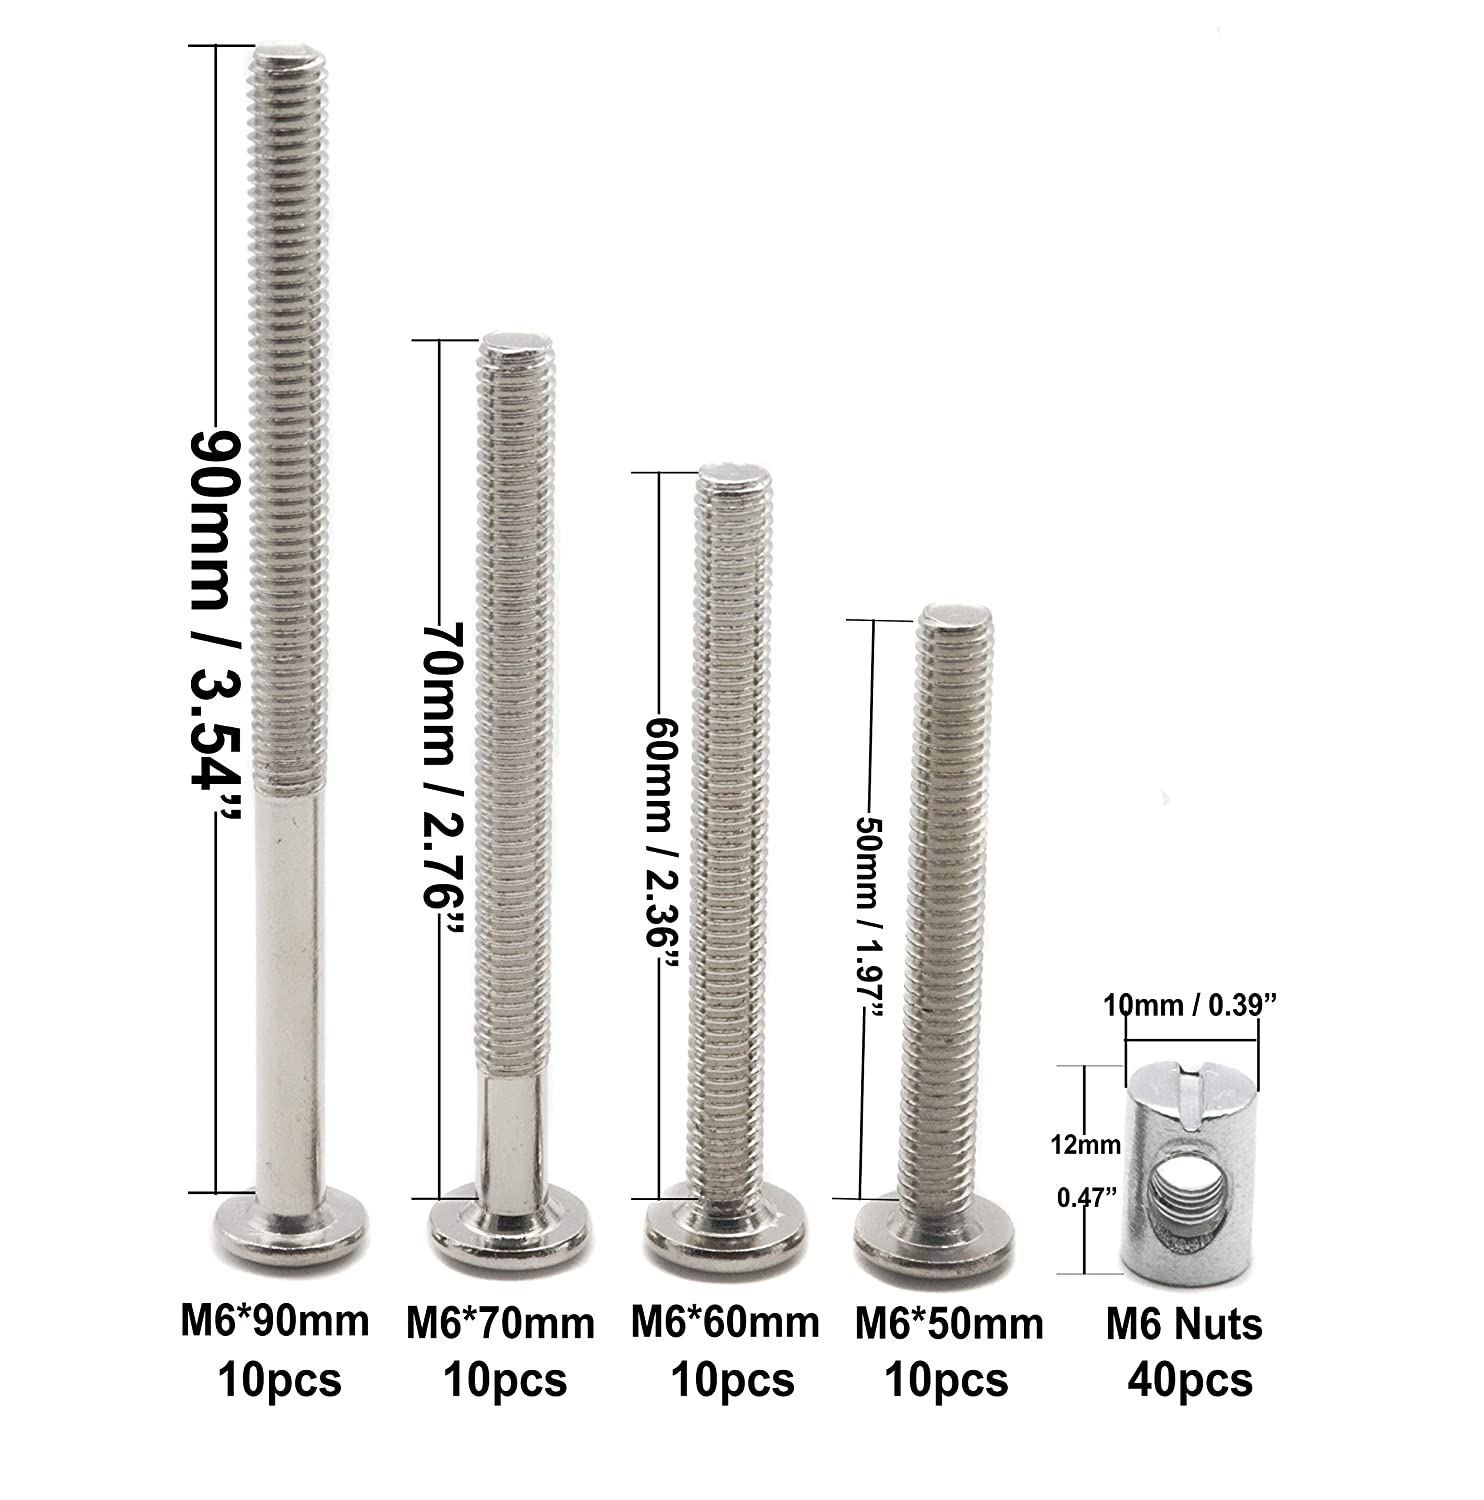 M6 Bed Crib Bolts Furniture Barrel Nuts Hardware Replacement Parts Kit binifiMux 40 Set Phillips Head M6 x 50mm//60mm//70mm//90mm Assorted Crib Bolt Barrel Nut